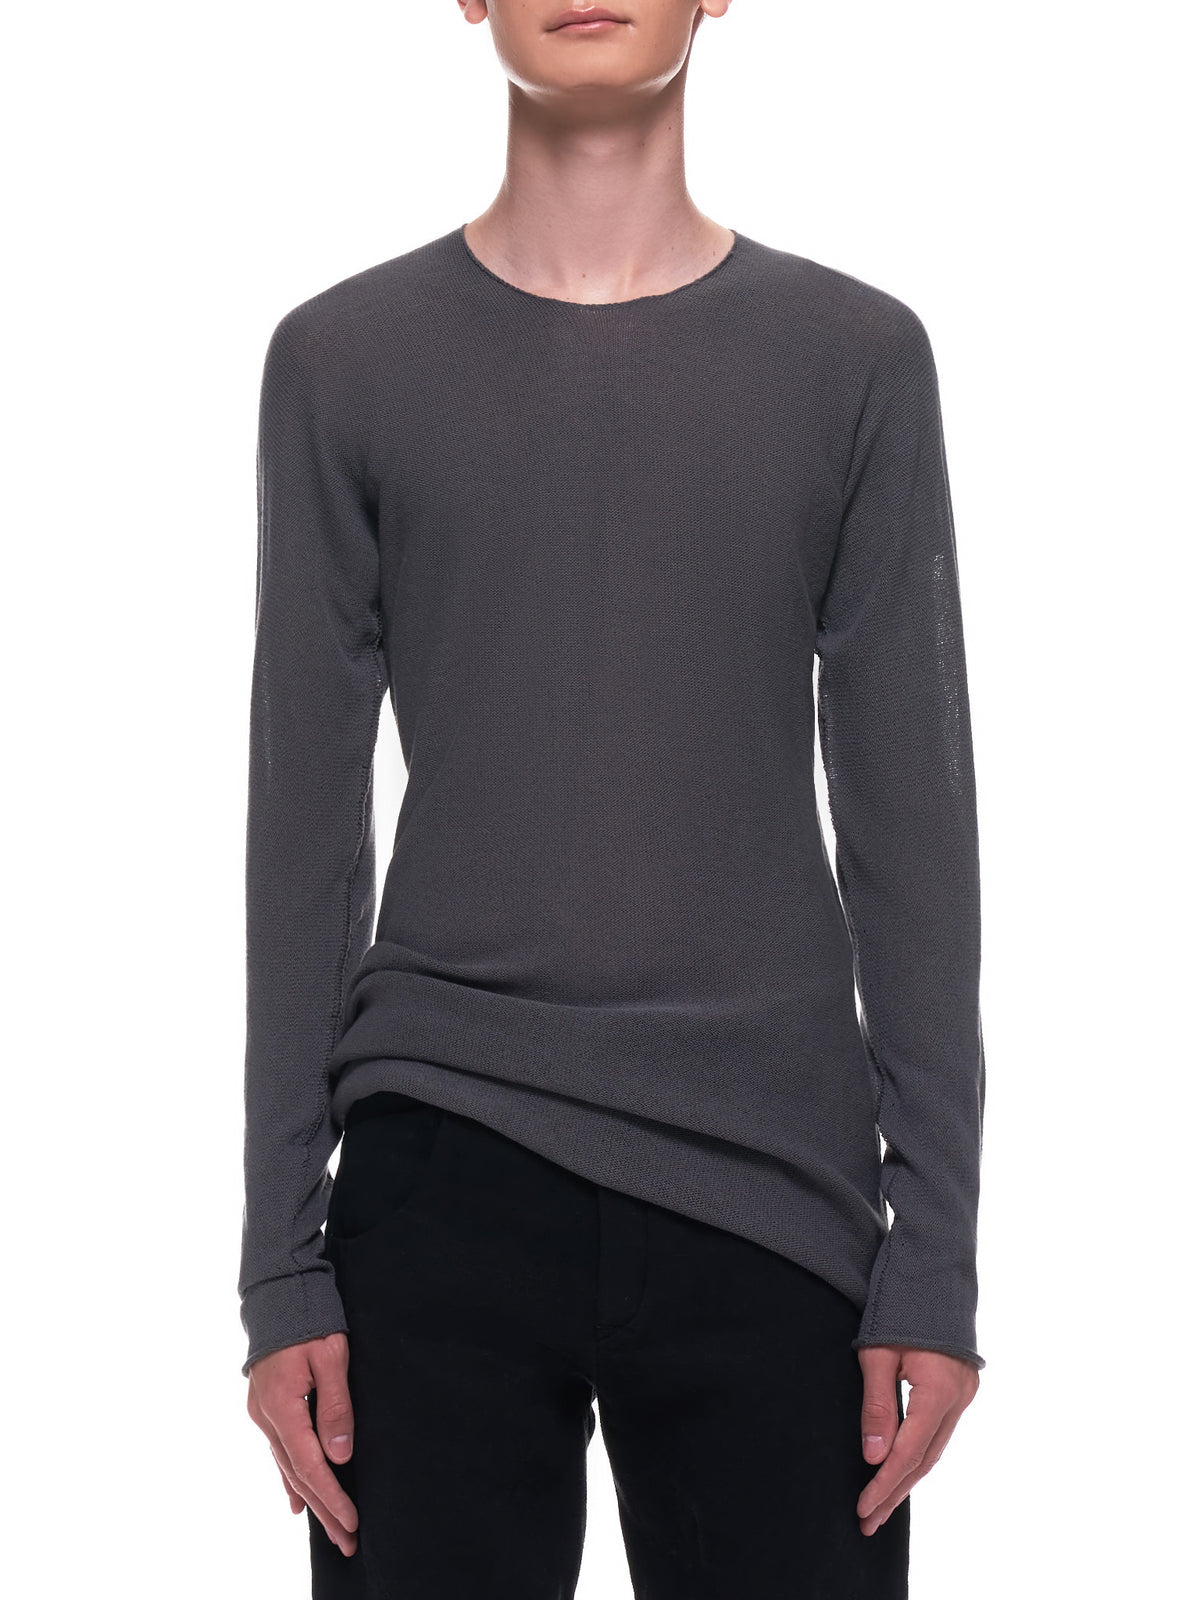 Arched Long Sleeve Shirt (36YMSW251-CO148-MID-GREY-BLACK)